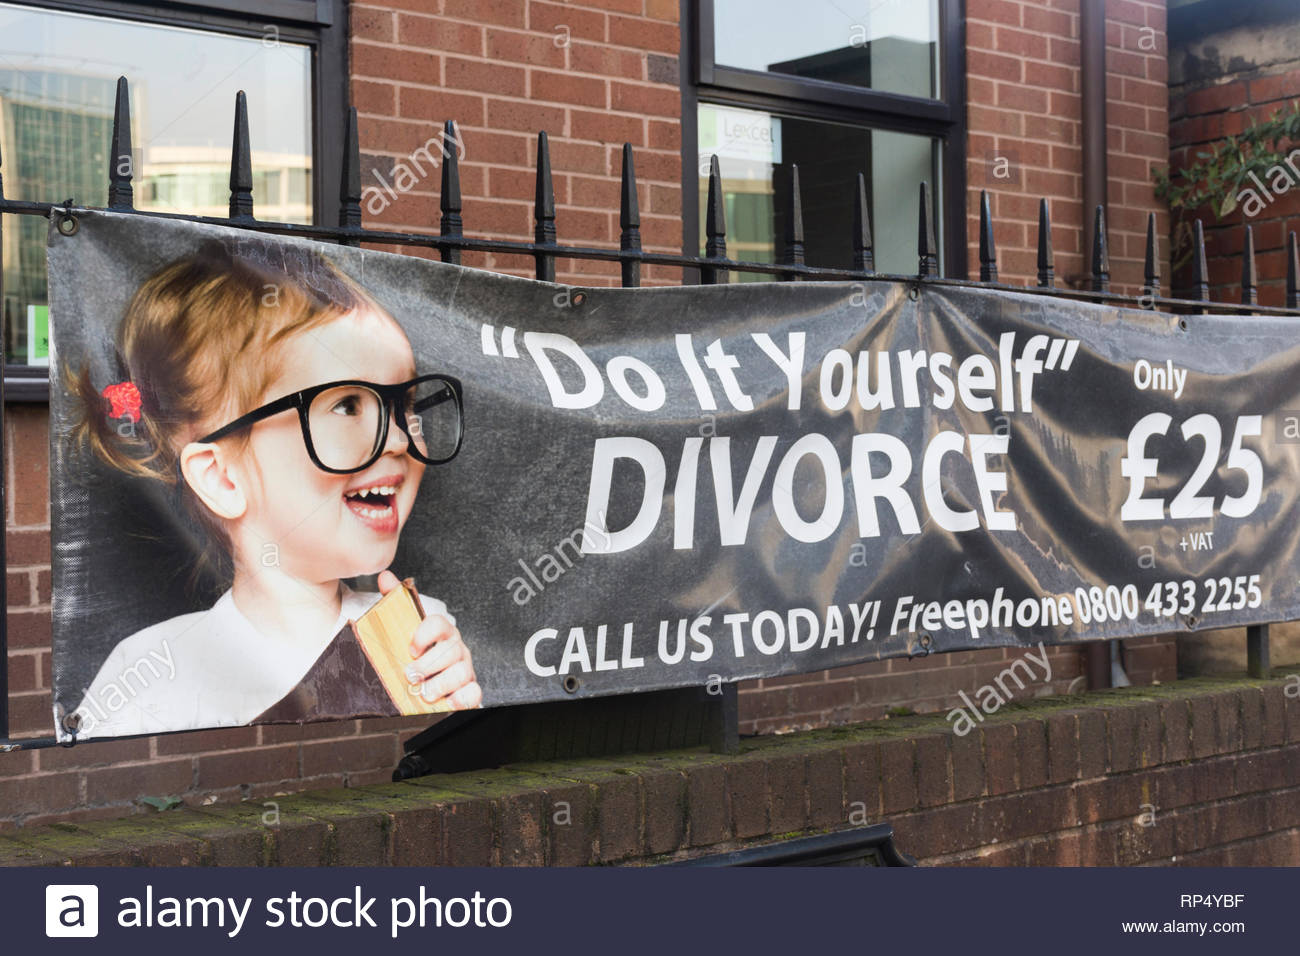 A banner advertising 'Do It Yourself' divorce for only £25 in Sheffield, South Yorkshire, England, UK - Stock Image